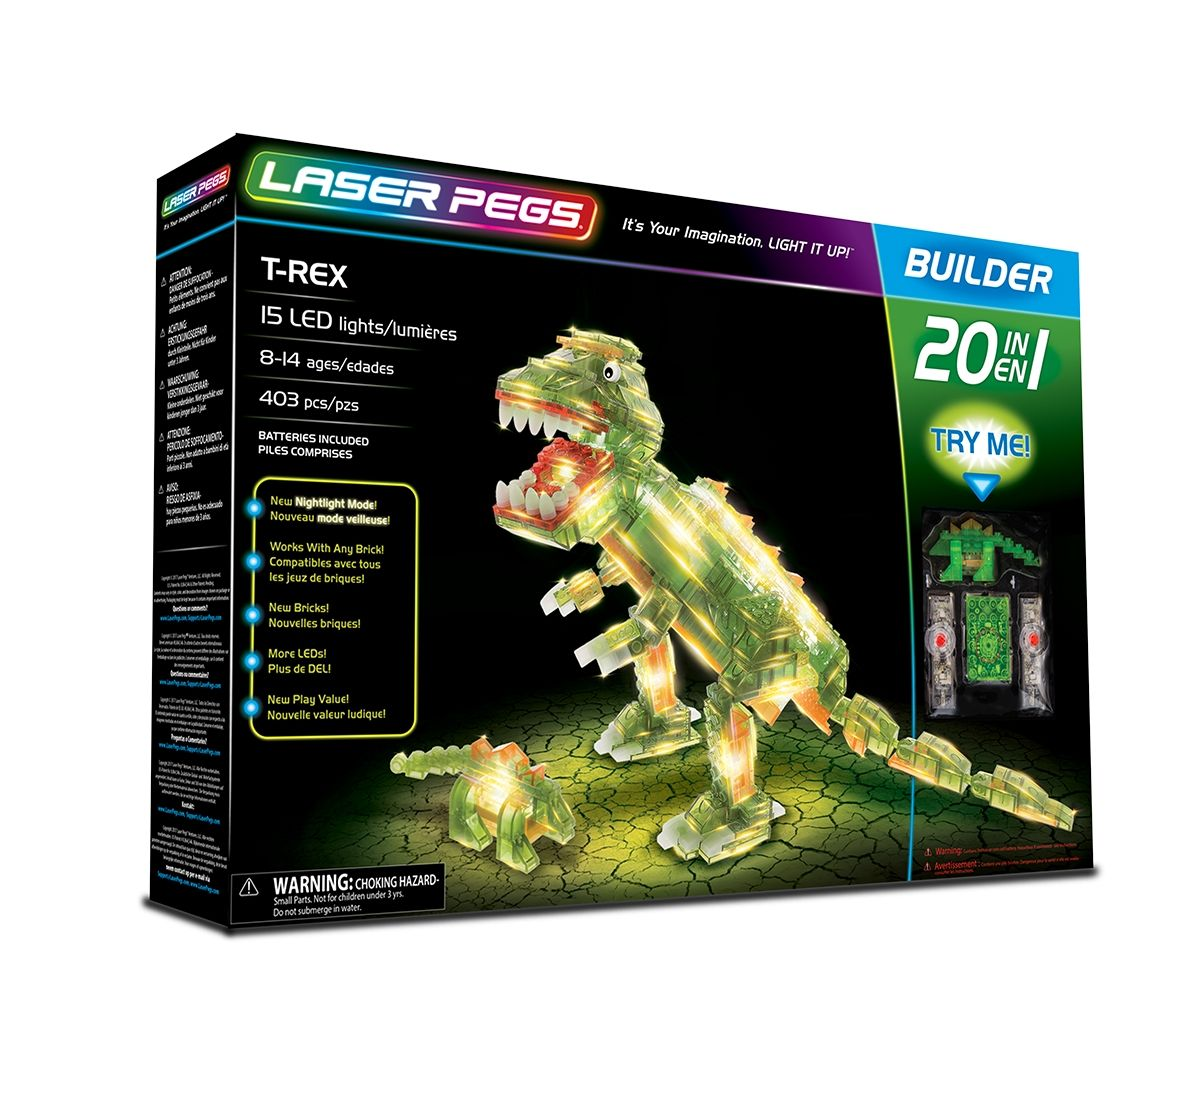 Laser Pegs 20 in 1 T-Rex